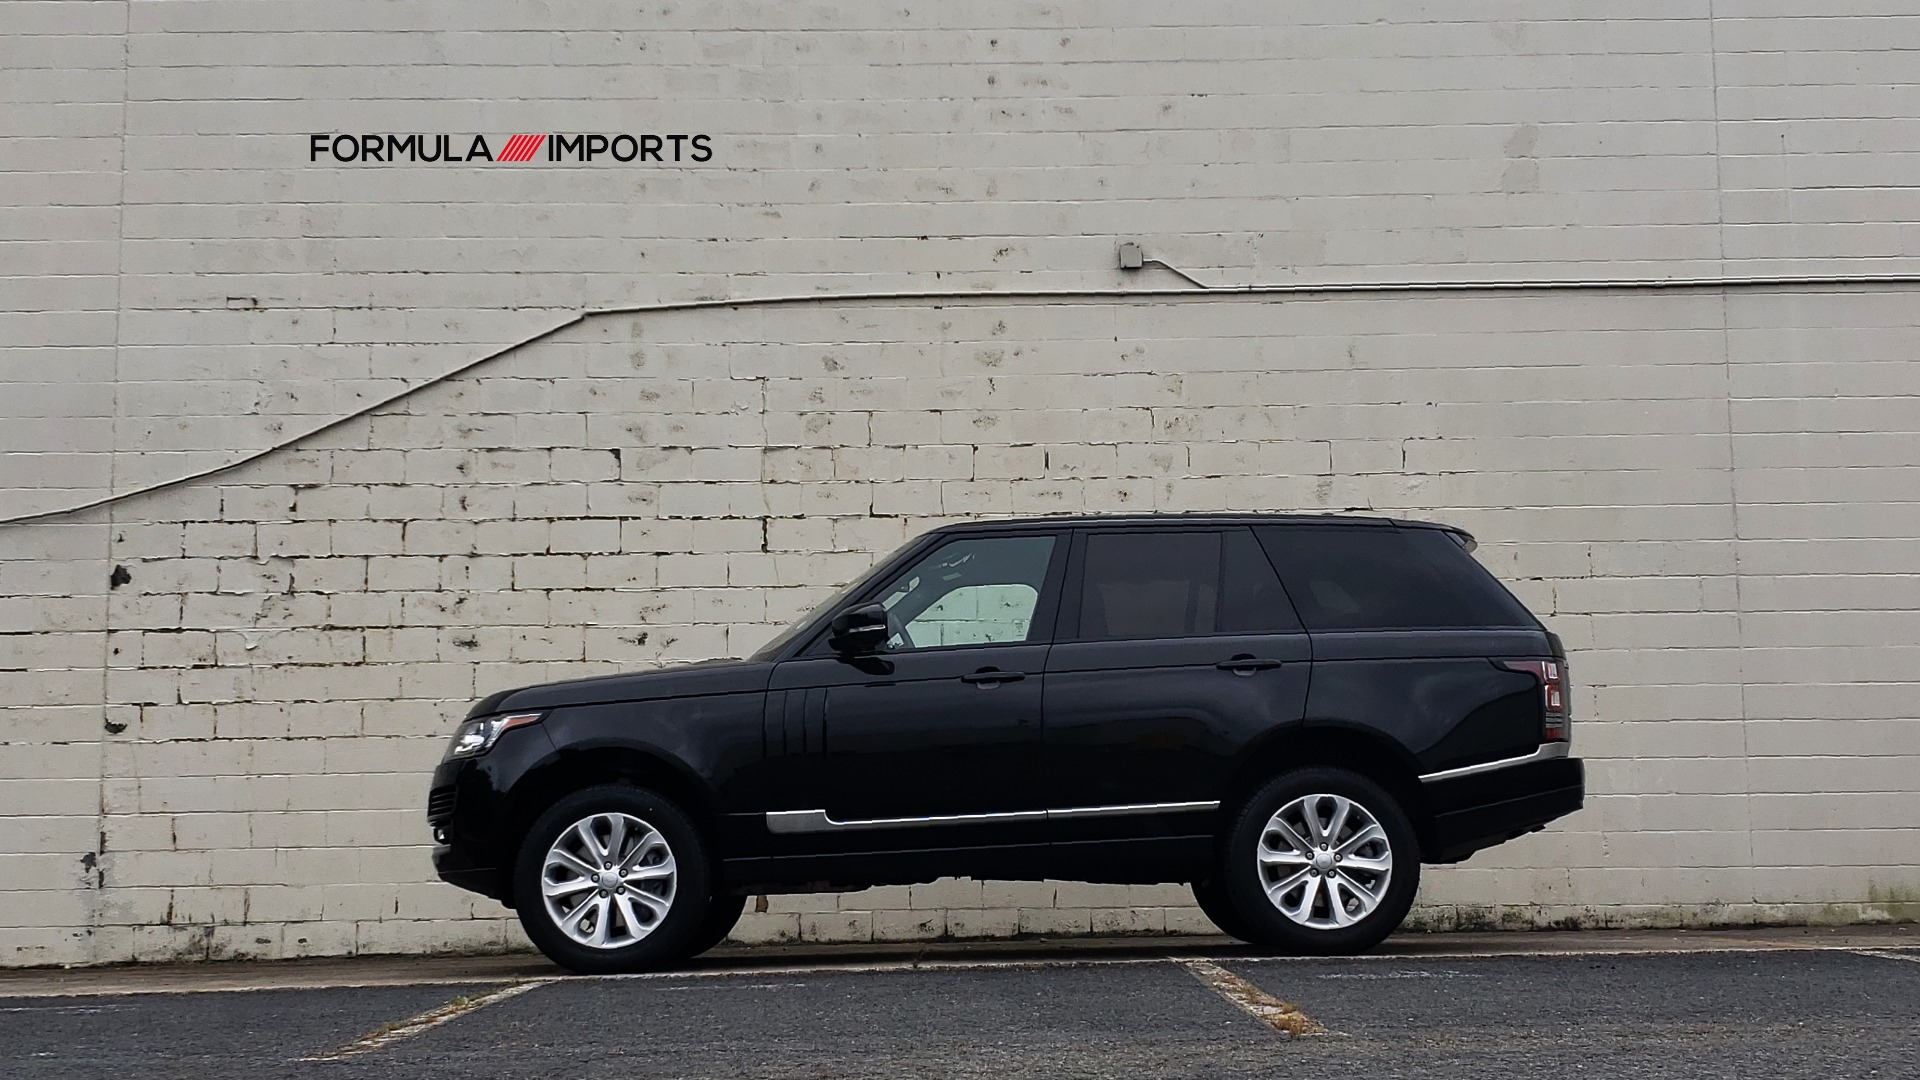 Used 2016 Land Rover Range Rover HSE 3.0L SC V6 / NAV / PANO-ROOF / VENT SEATS / REARVIEW / BLIND SPOT for sale Sold at Formula Imports in Charlotte NC 28227 10